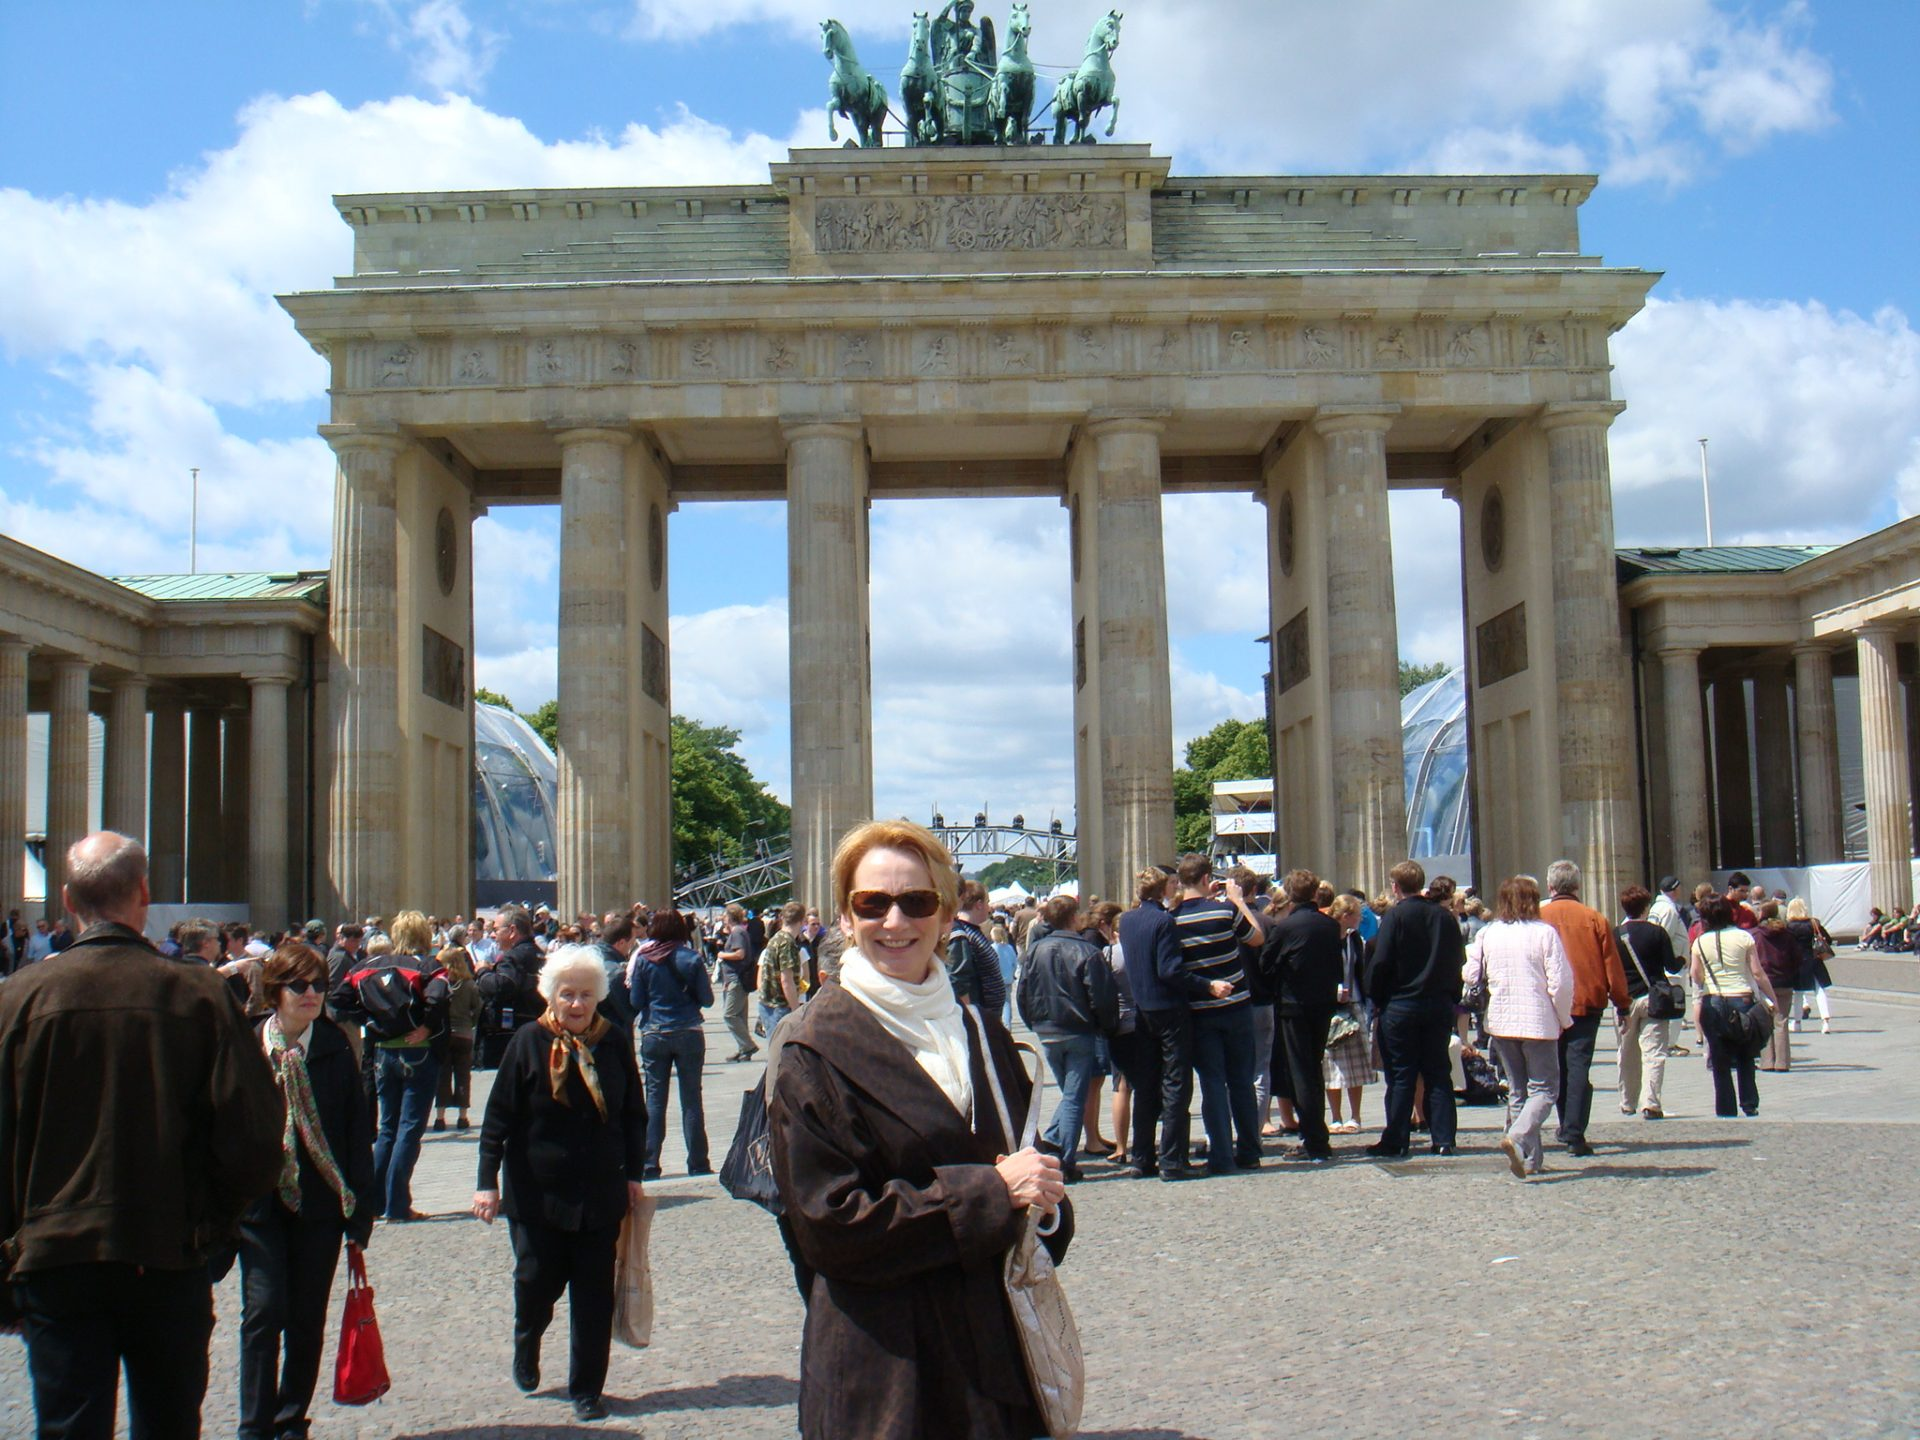 Me, celebrating freedom under the Brandenburg Gate